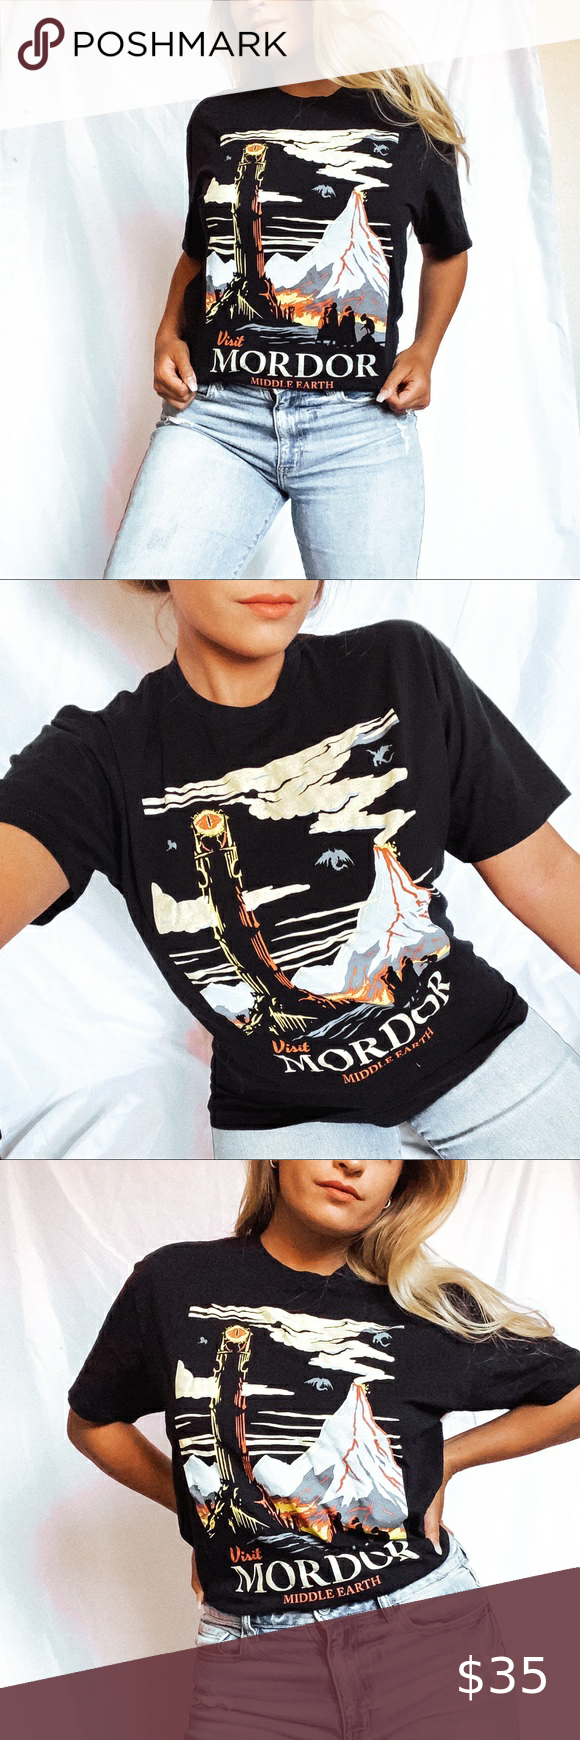 Mordor Official Lotr Tee In 2020 Vintage Tops Clothes Design Fashion